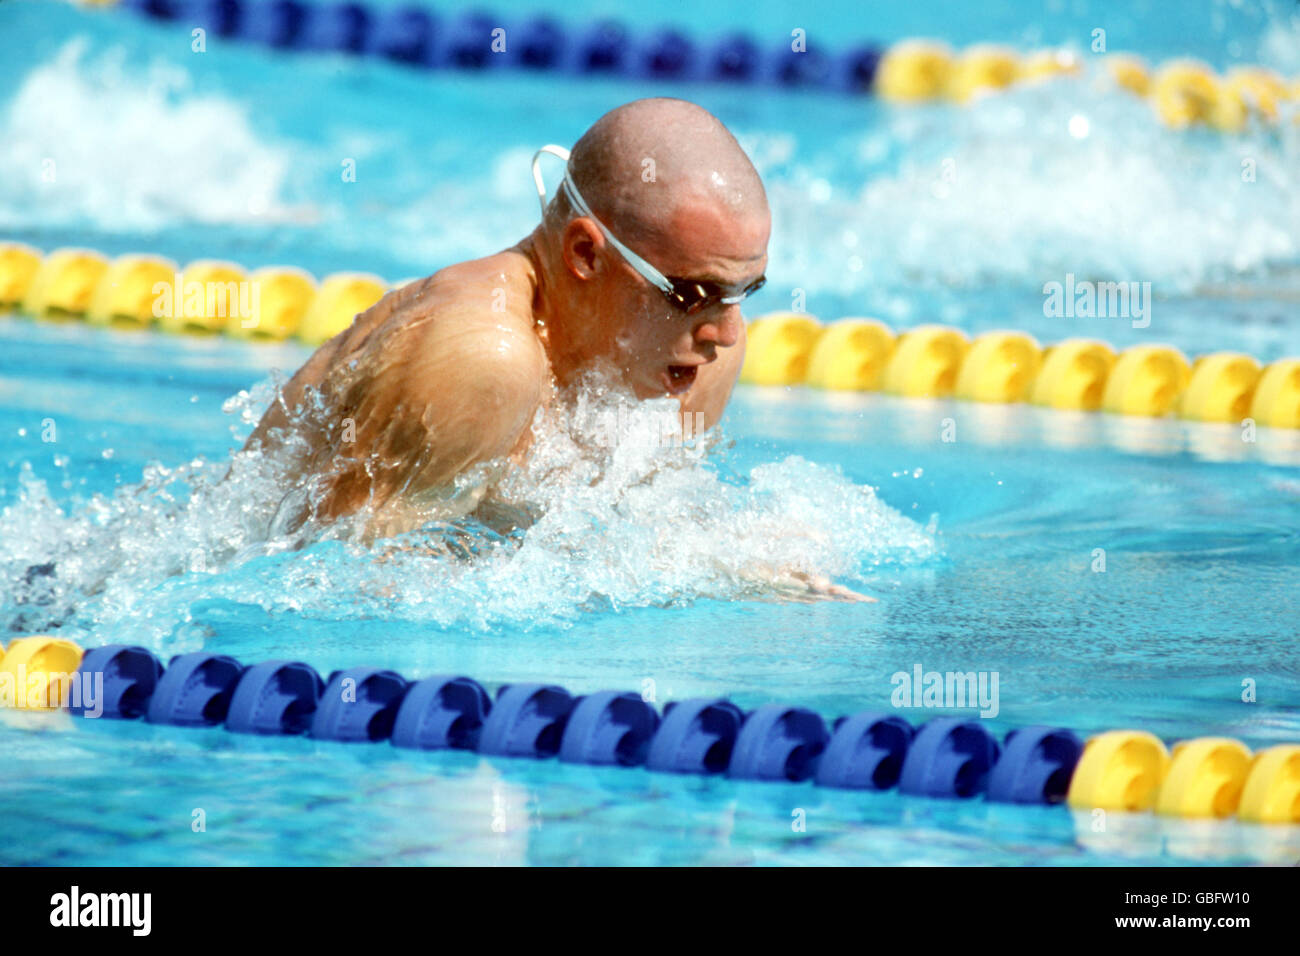 swimming barcelona olympic games 1992 mens 100m breaststroke